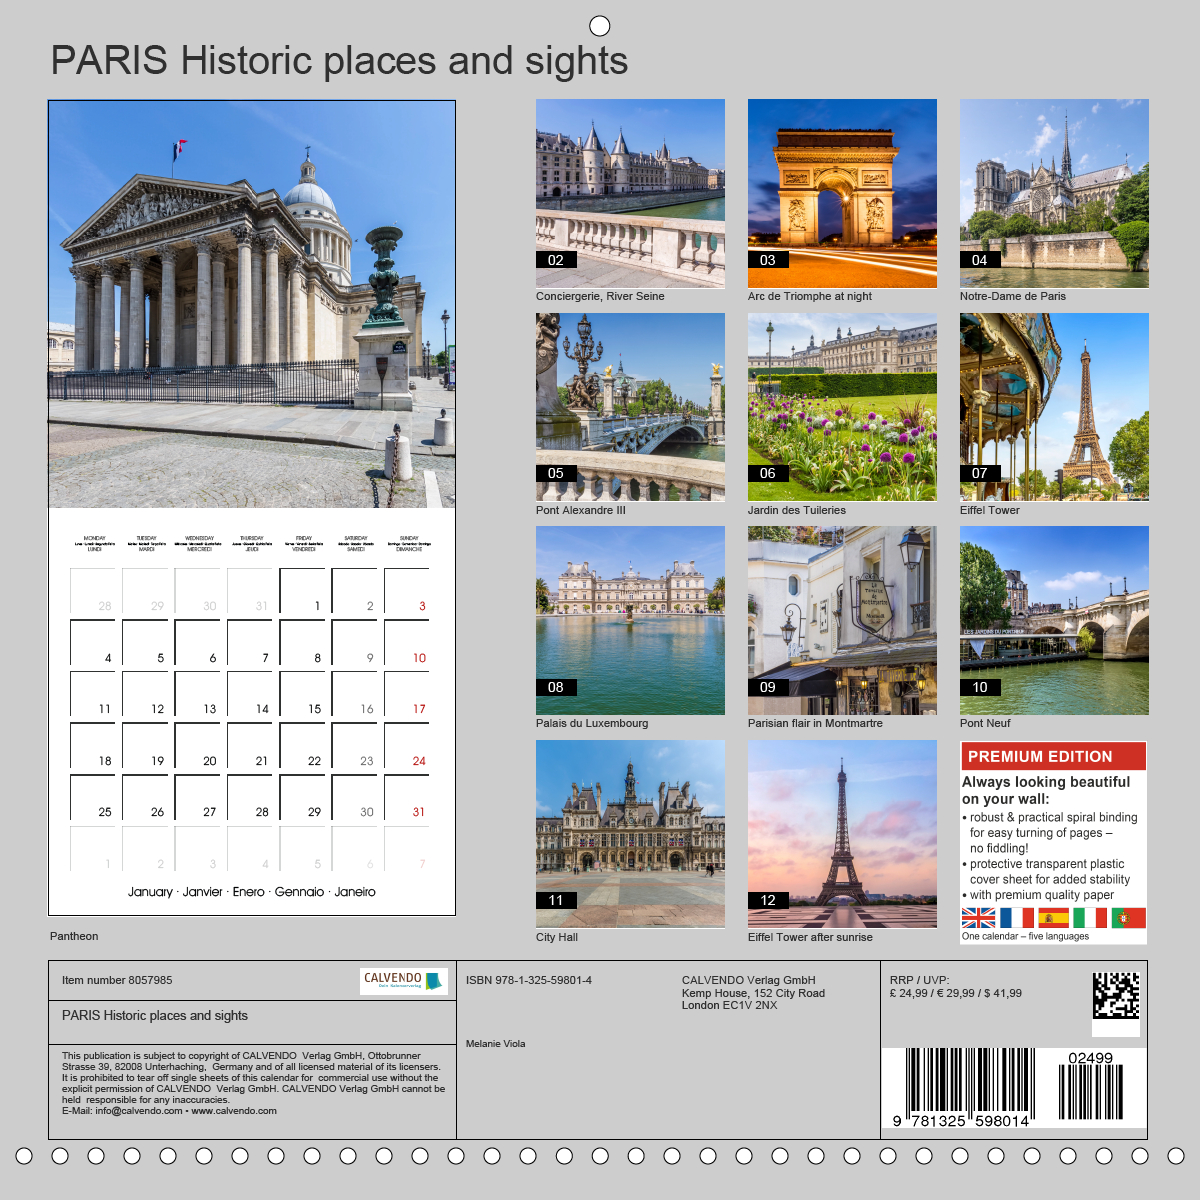 Calendar back - PARIS Historic places and sights